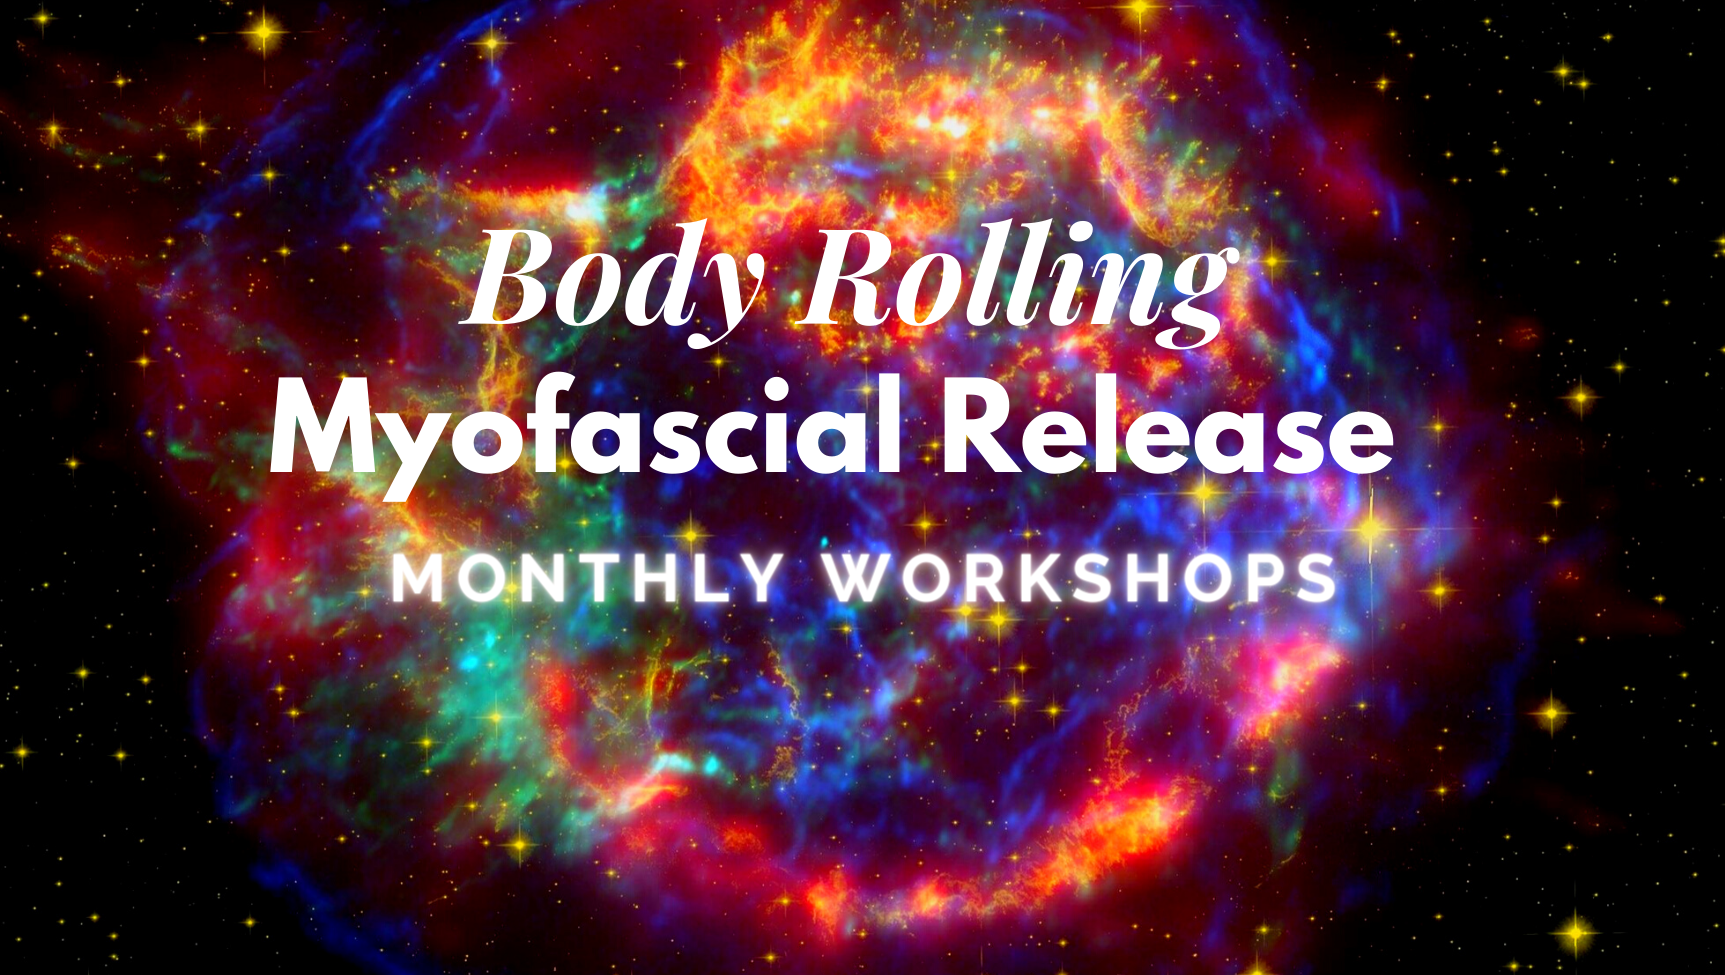 Private Yoga Instructor Santa Monica Los Angeles Why I Love Body Rolling Myofascial Release